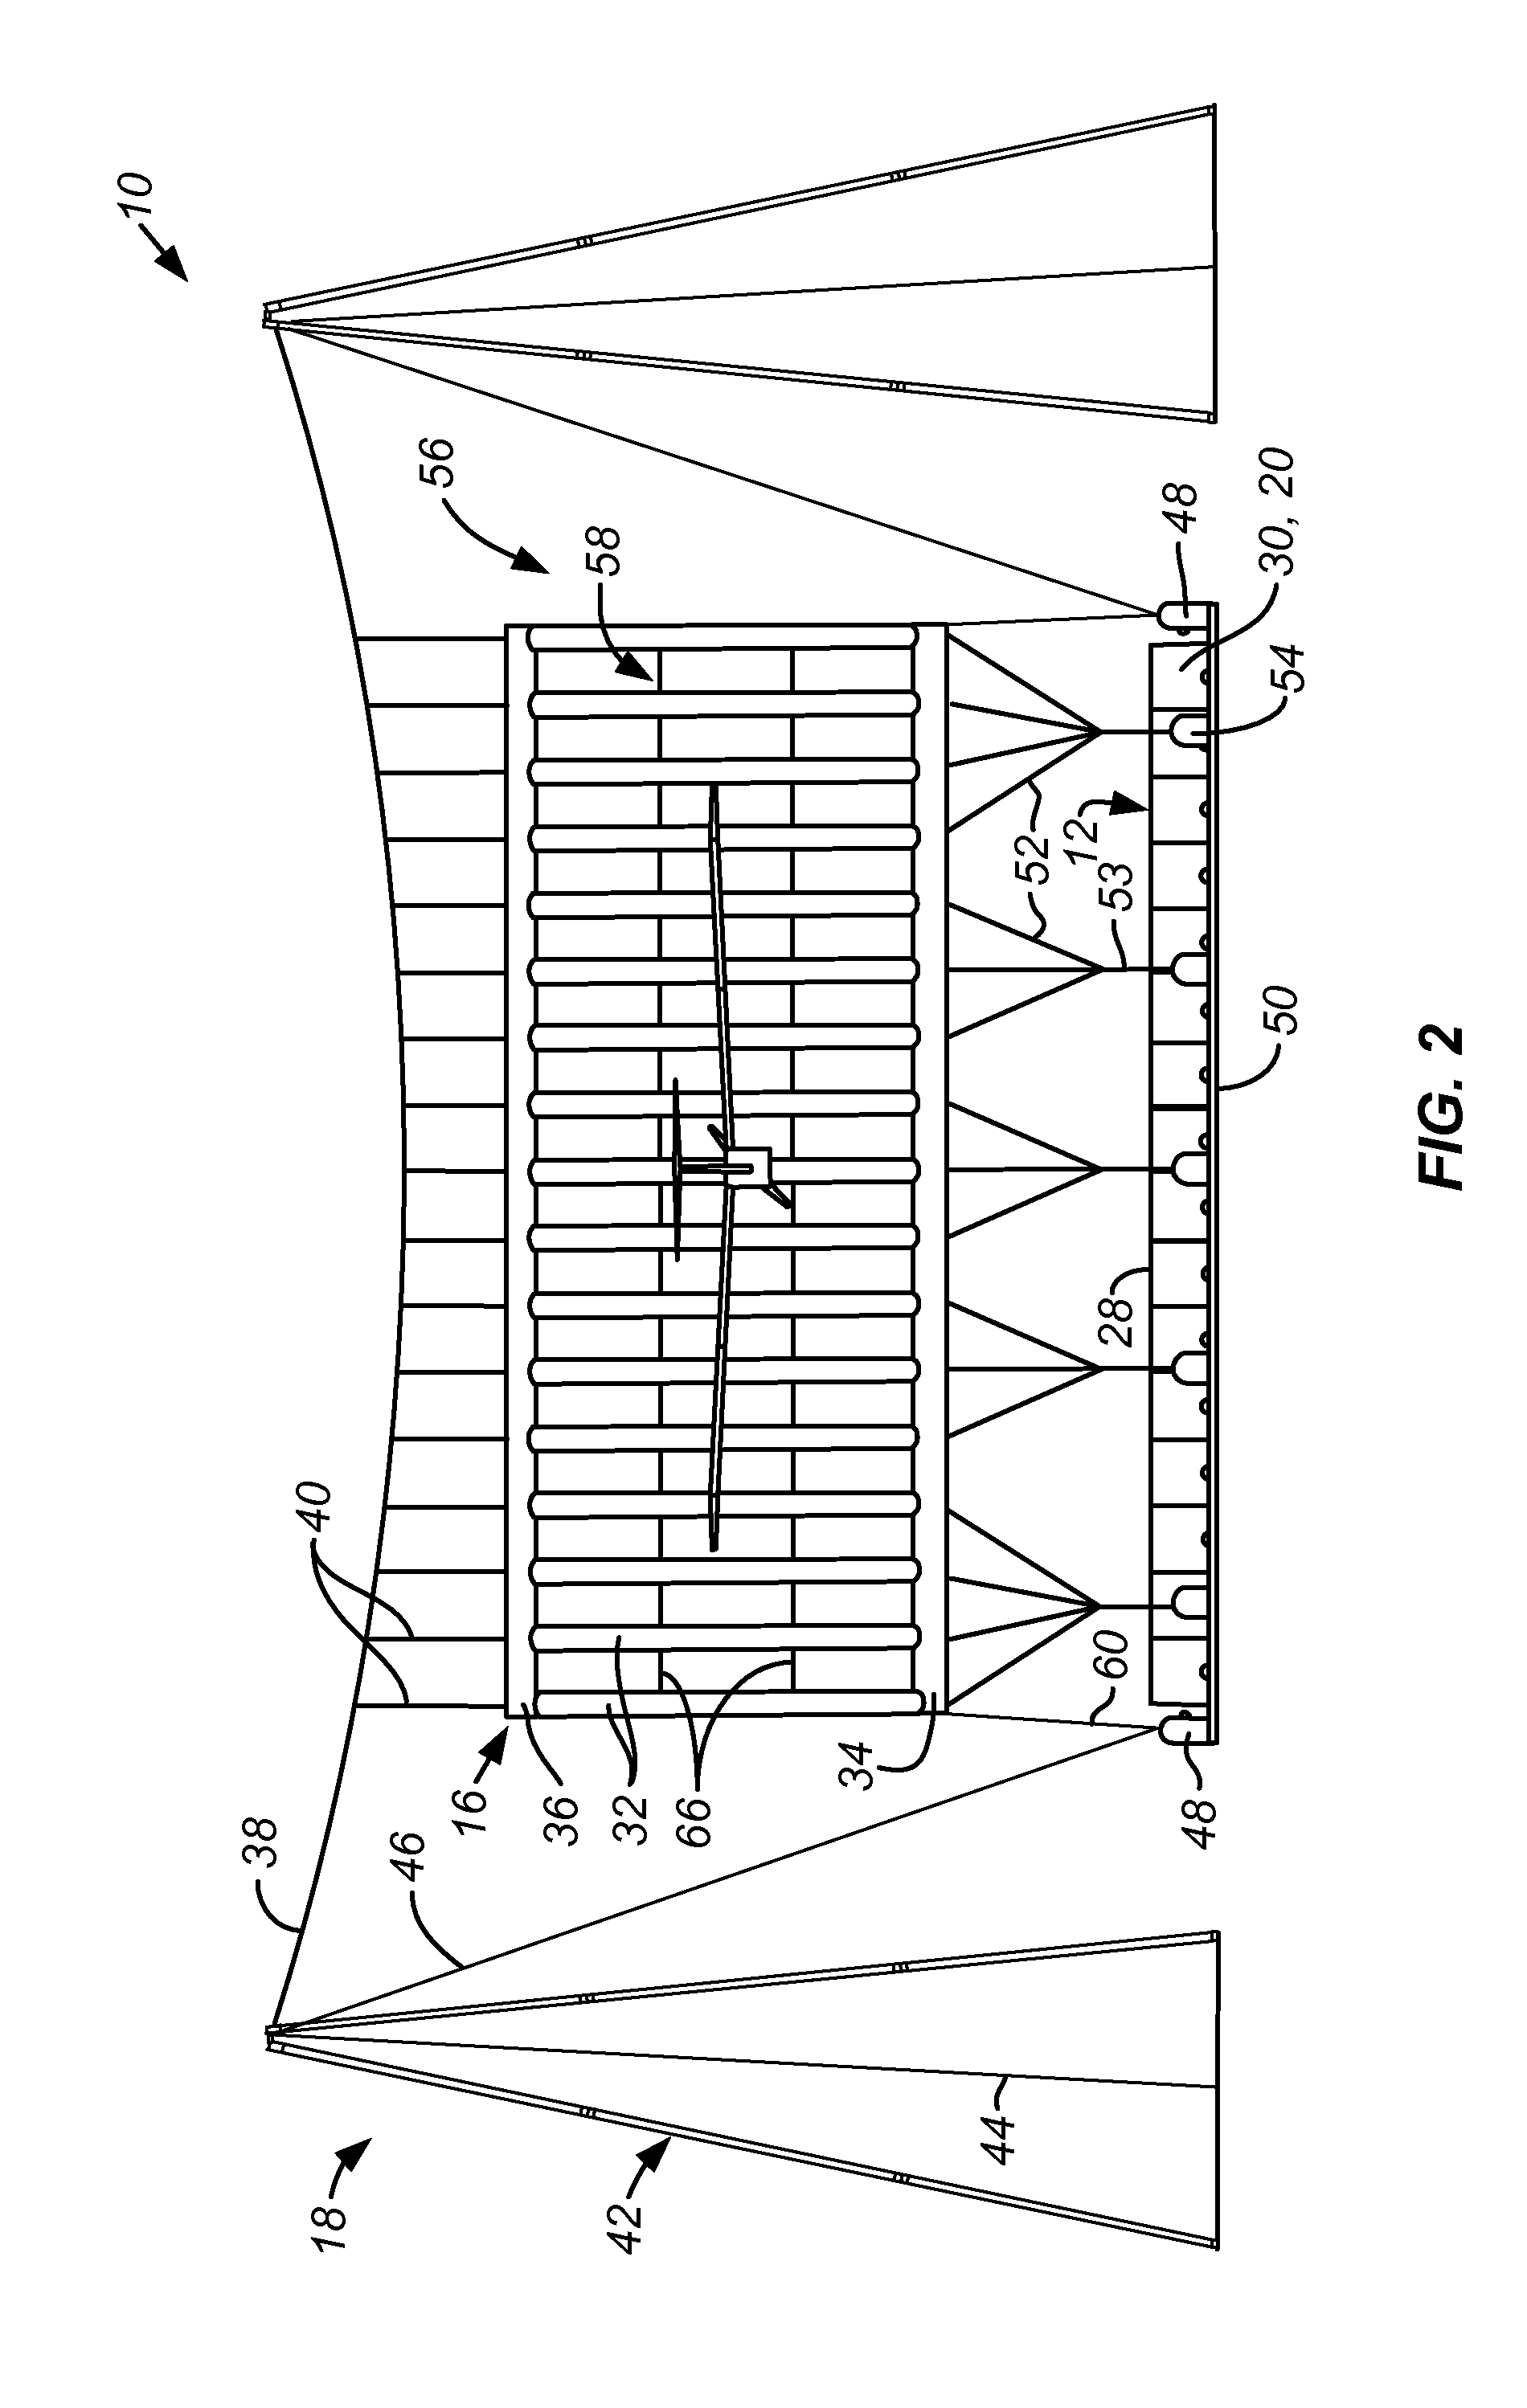 patent us20120032025 uav recovery system google patents